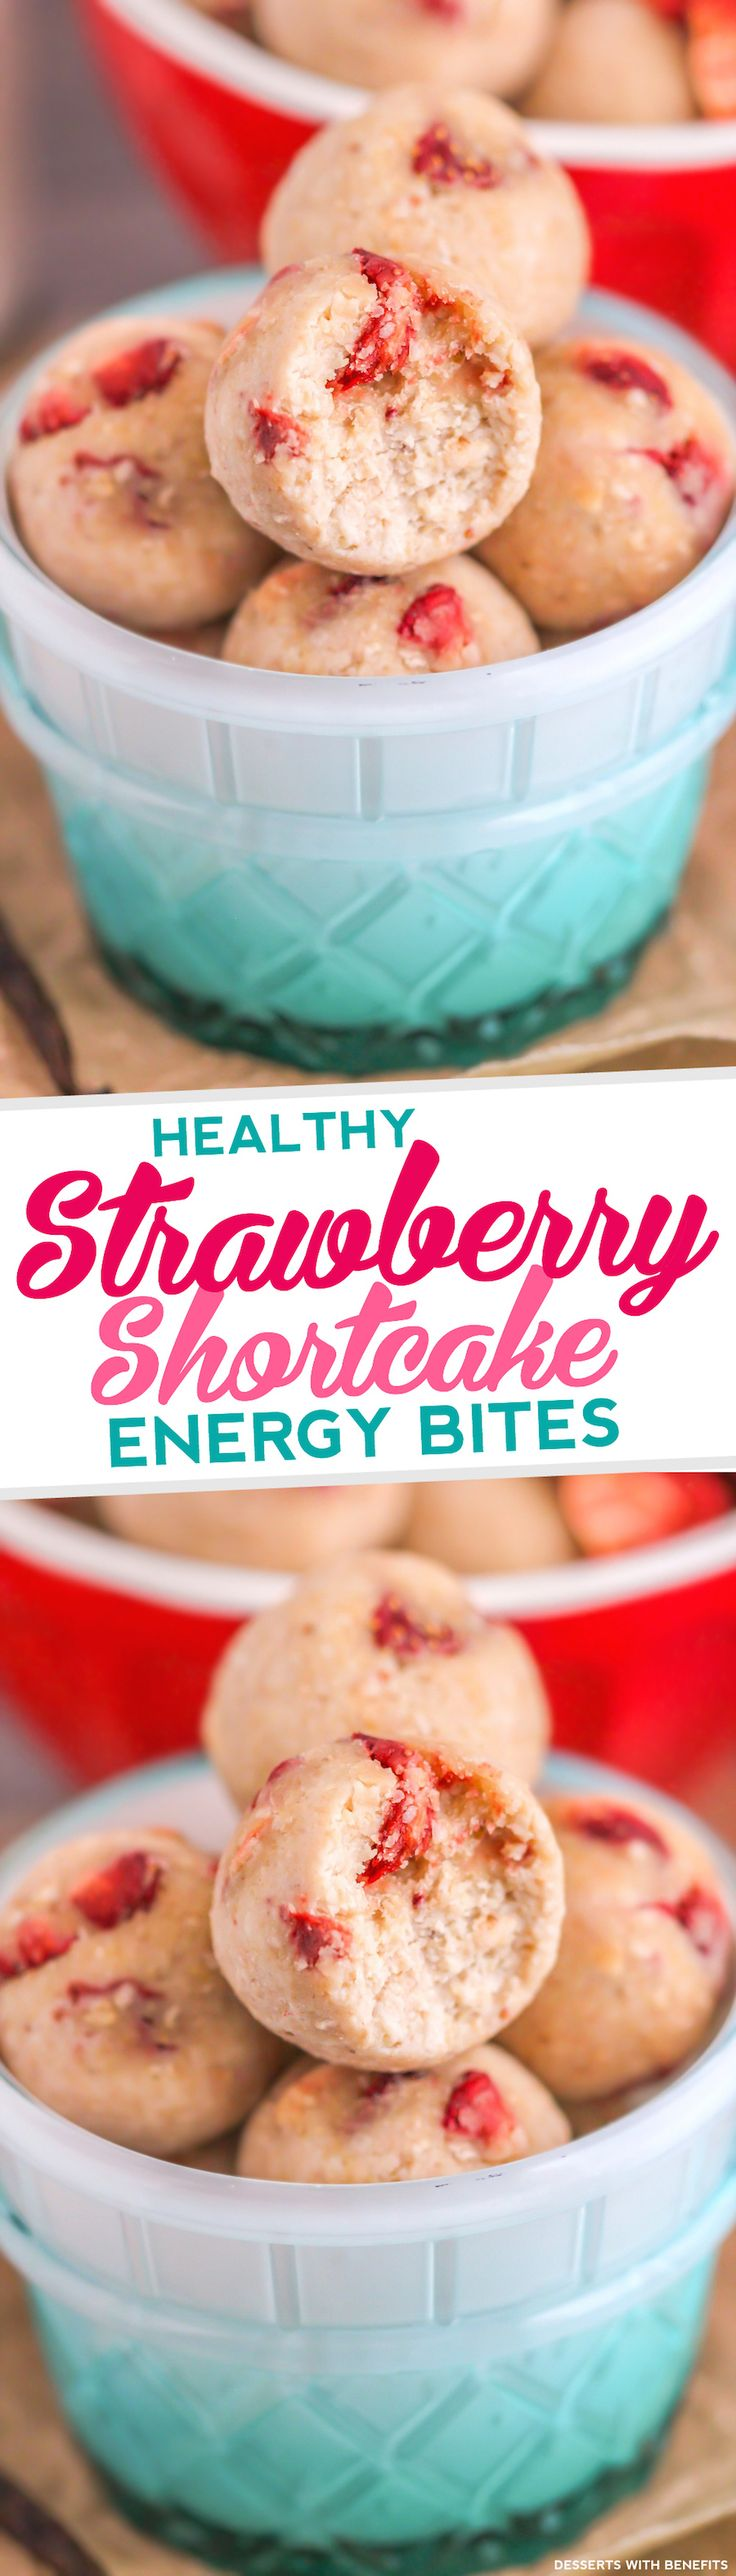 Healthy Strawberry Shortcake Energy Bites (refined sugar free, gluten free) - Desserts with Benefits